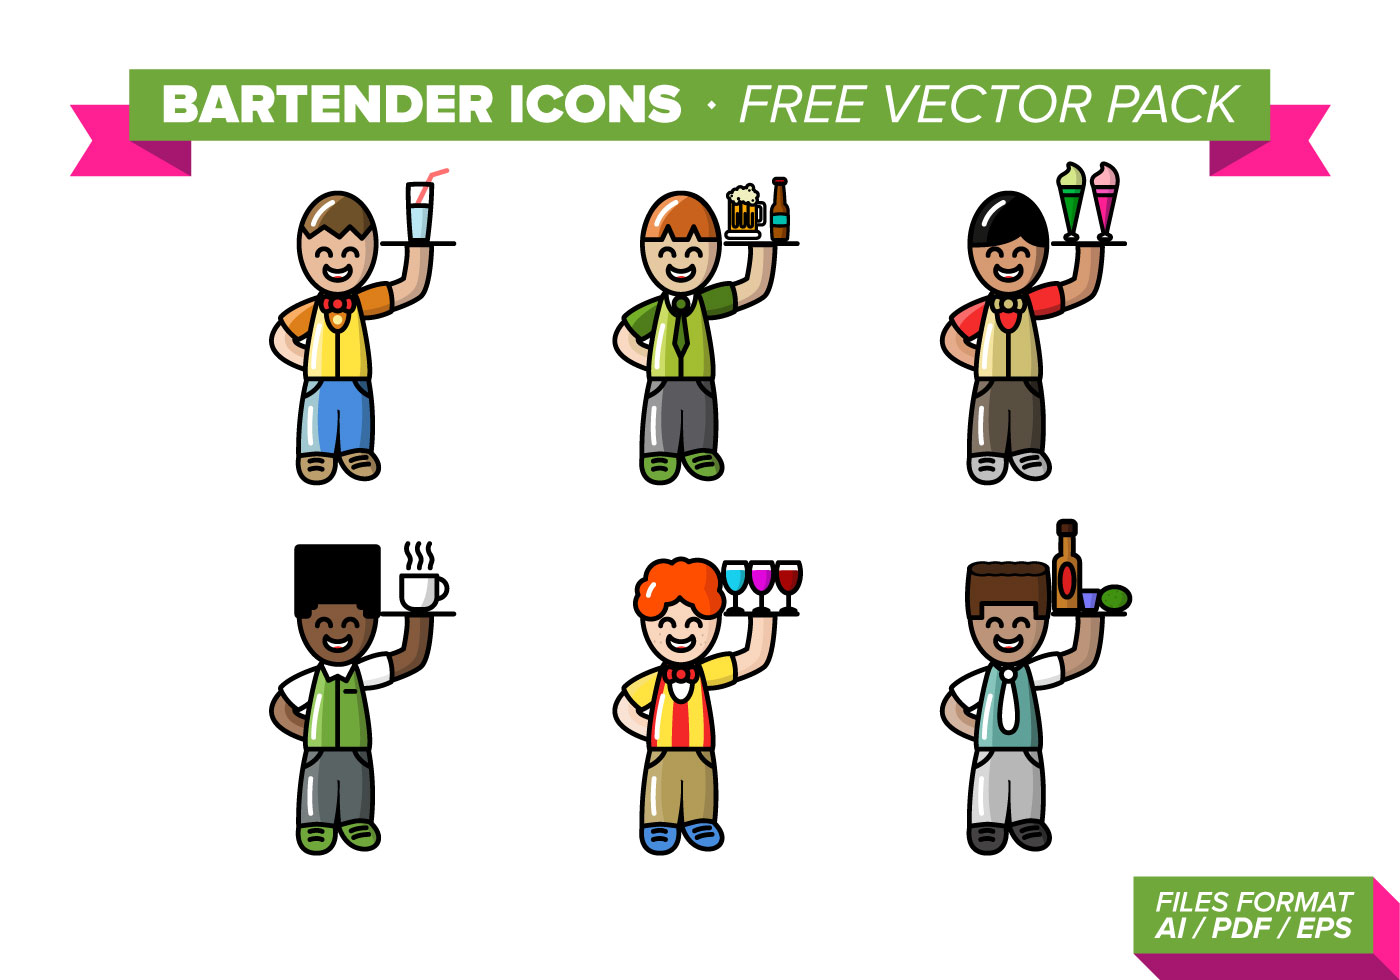 Bartender Icons Free Vector Pack - Download Free Vector ...